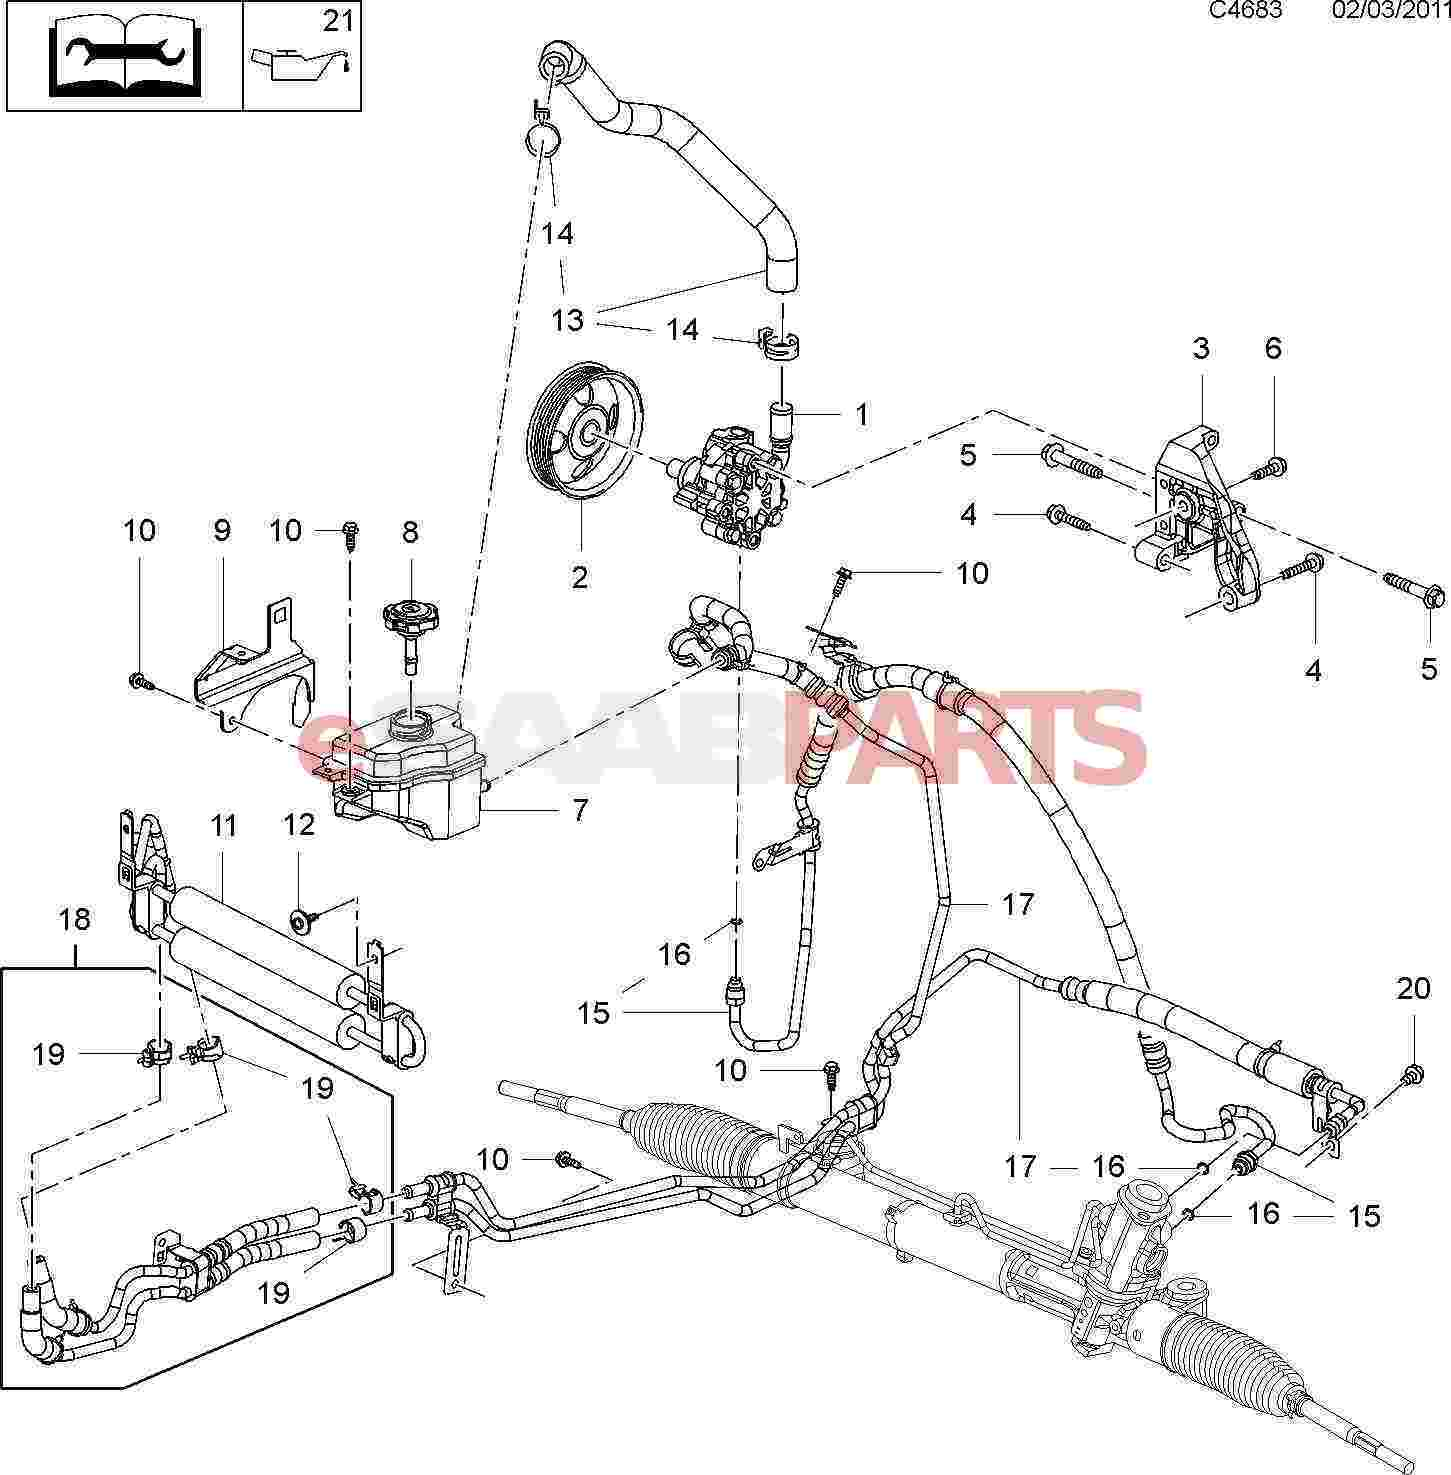 saab 9 3 power steering pump diagram